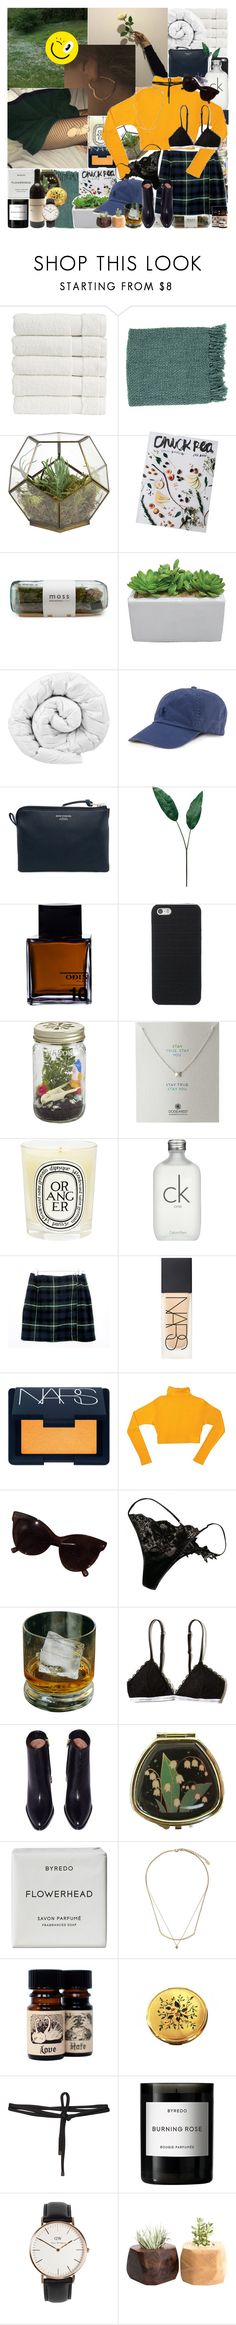 """713 to the 281"" by poisoned-ivy ❤ liked on Polyvore featuring Christy, Surya, Jayson Home, Brinkhaus, Polo Ralph Lauren, Acne Studios, Laura Cole, Odin, CB2 and Dogeared"